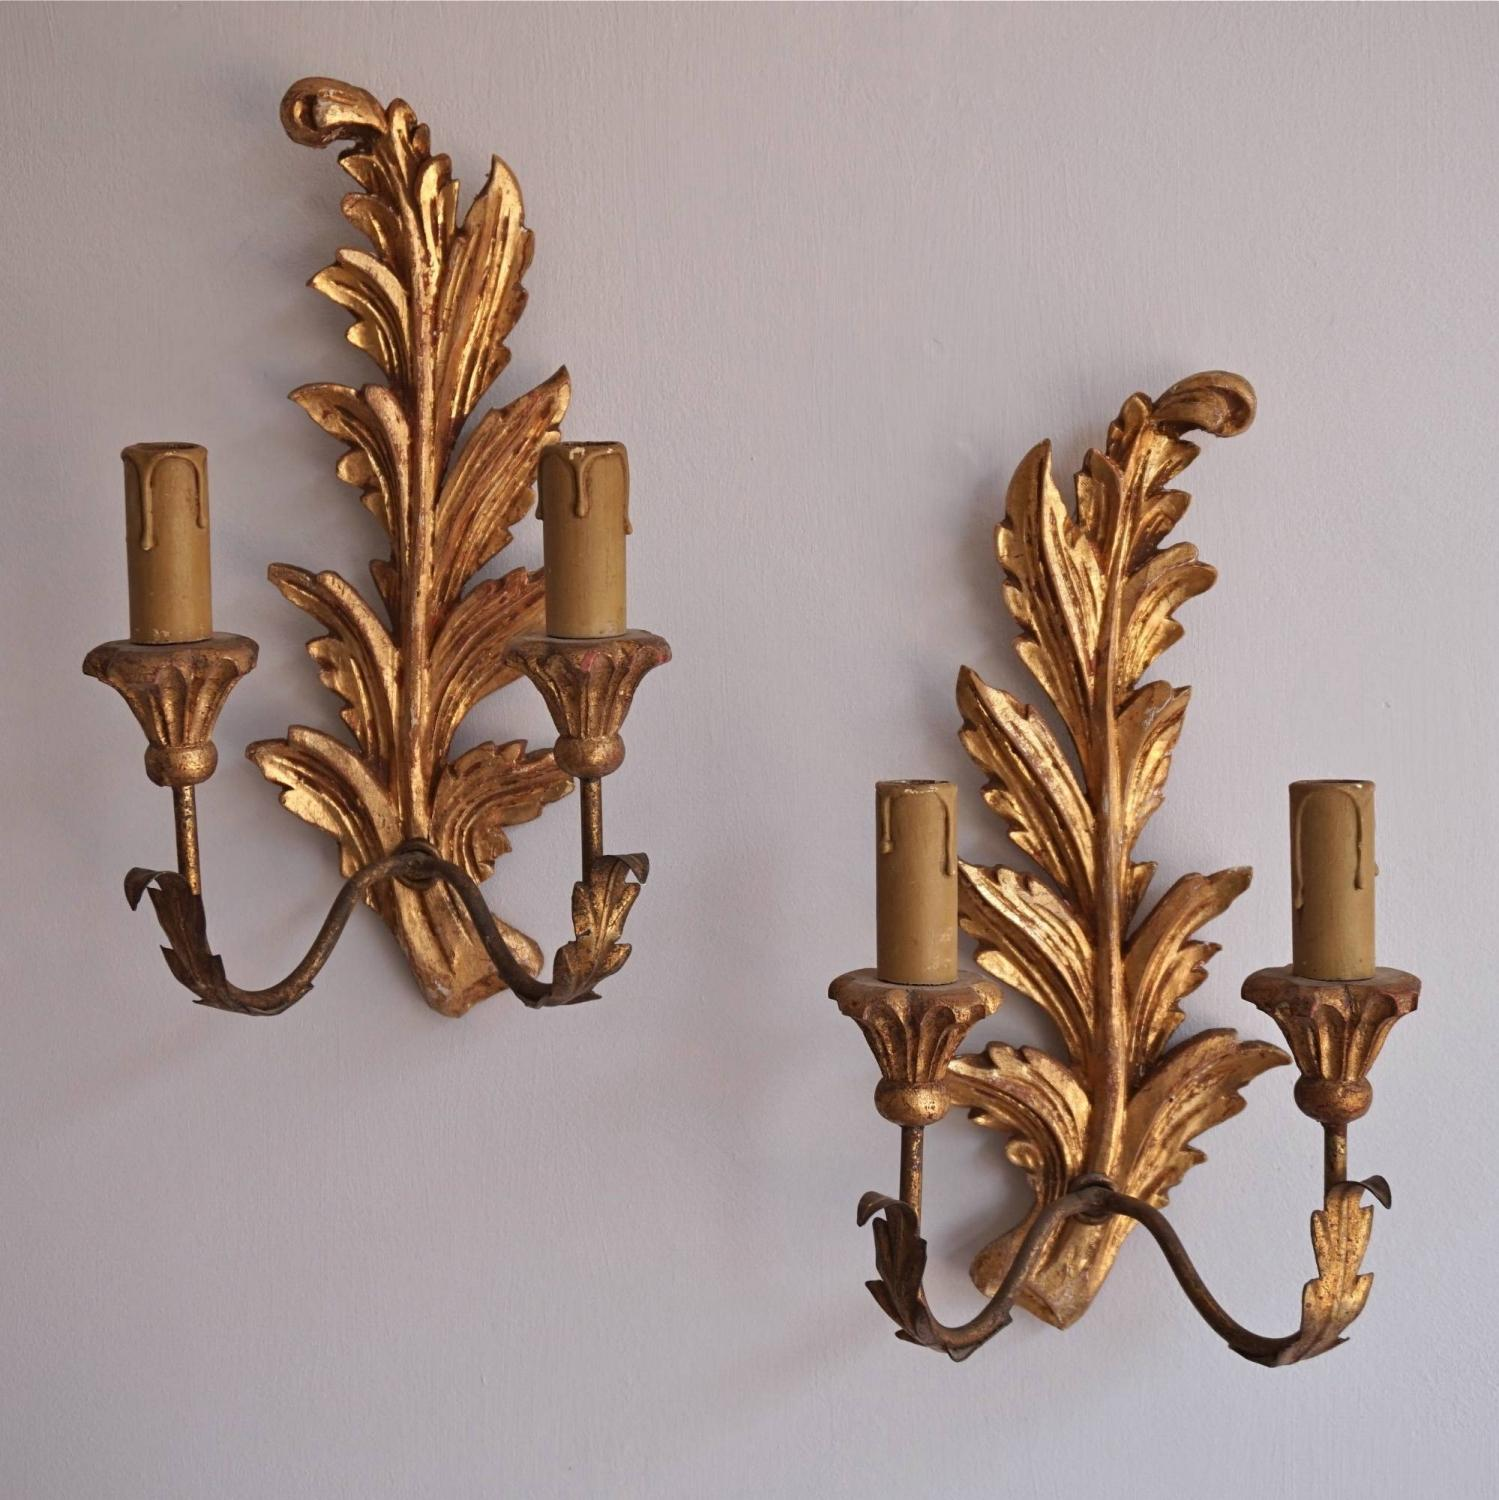 PAIR OF VINTAGE ITALIAN CARVED WOOD & GILDED WALL SCONCES